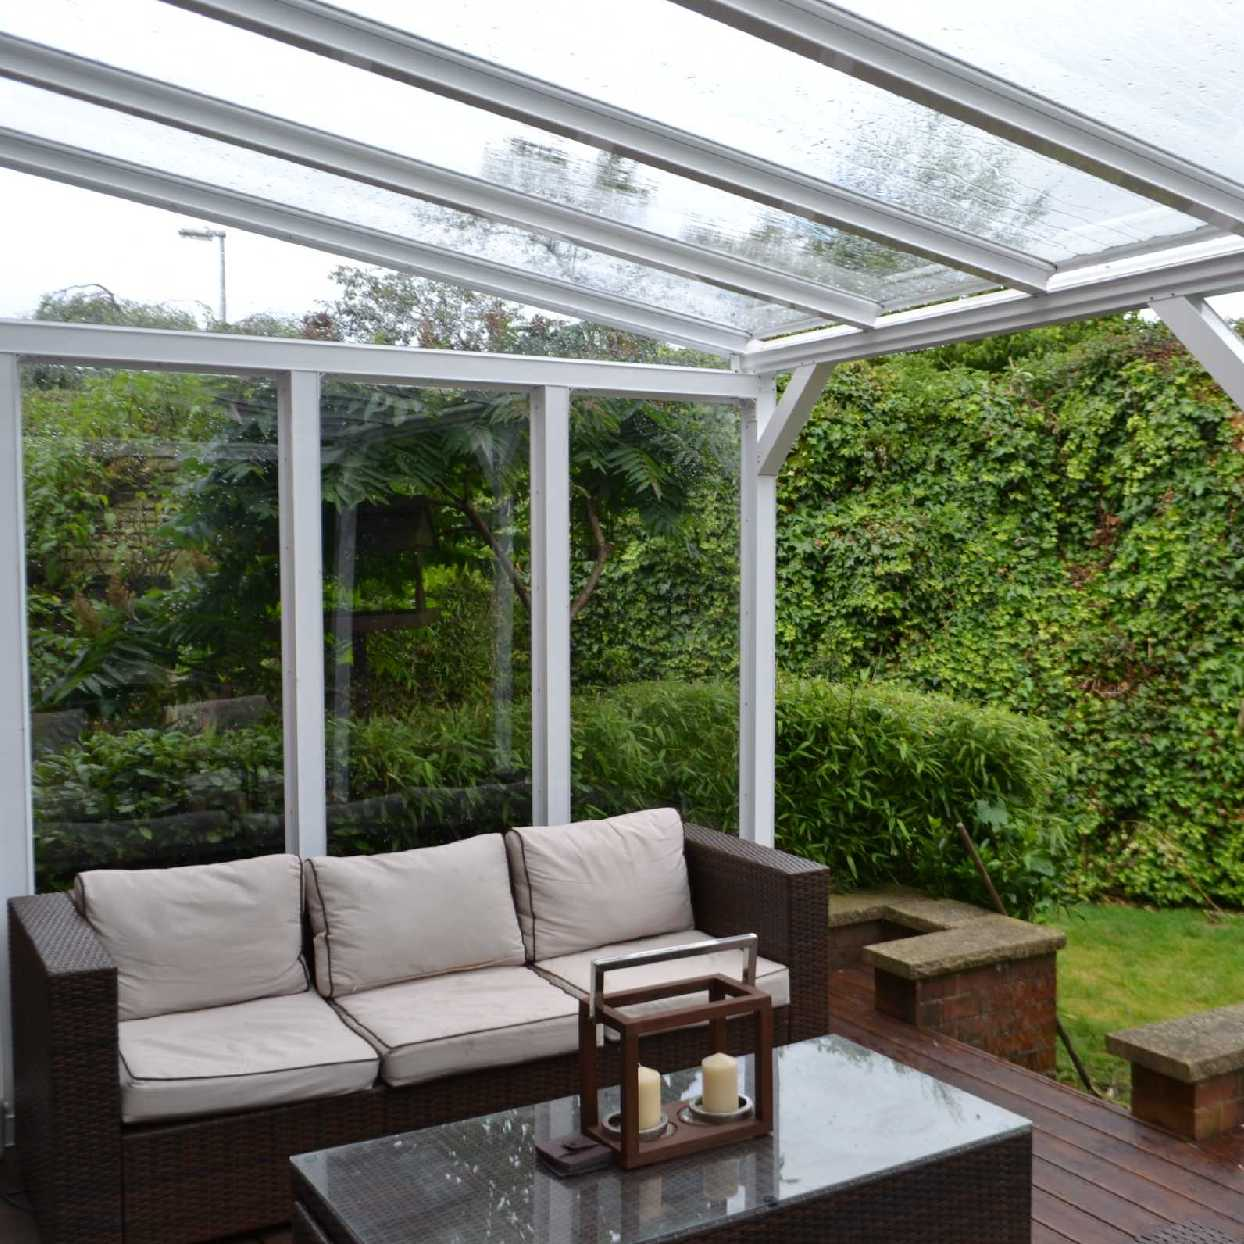 Omega Smart White Lean-To Canopy with 6mm Glass Clear Plate Polycarbonate Glazing - 3.5m (W) x 2.5m (P), (3) Supporting Posts